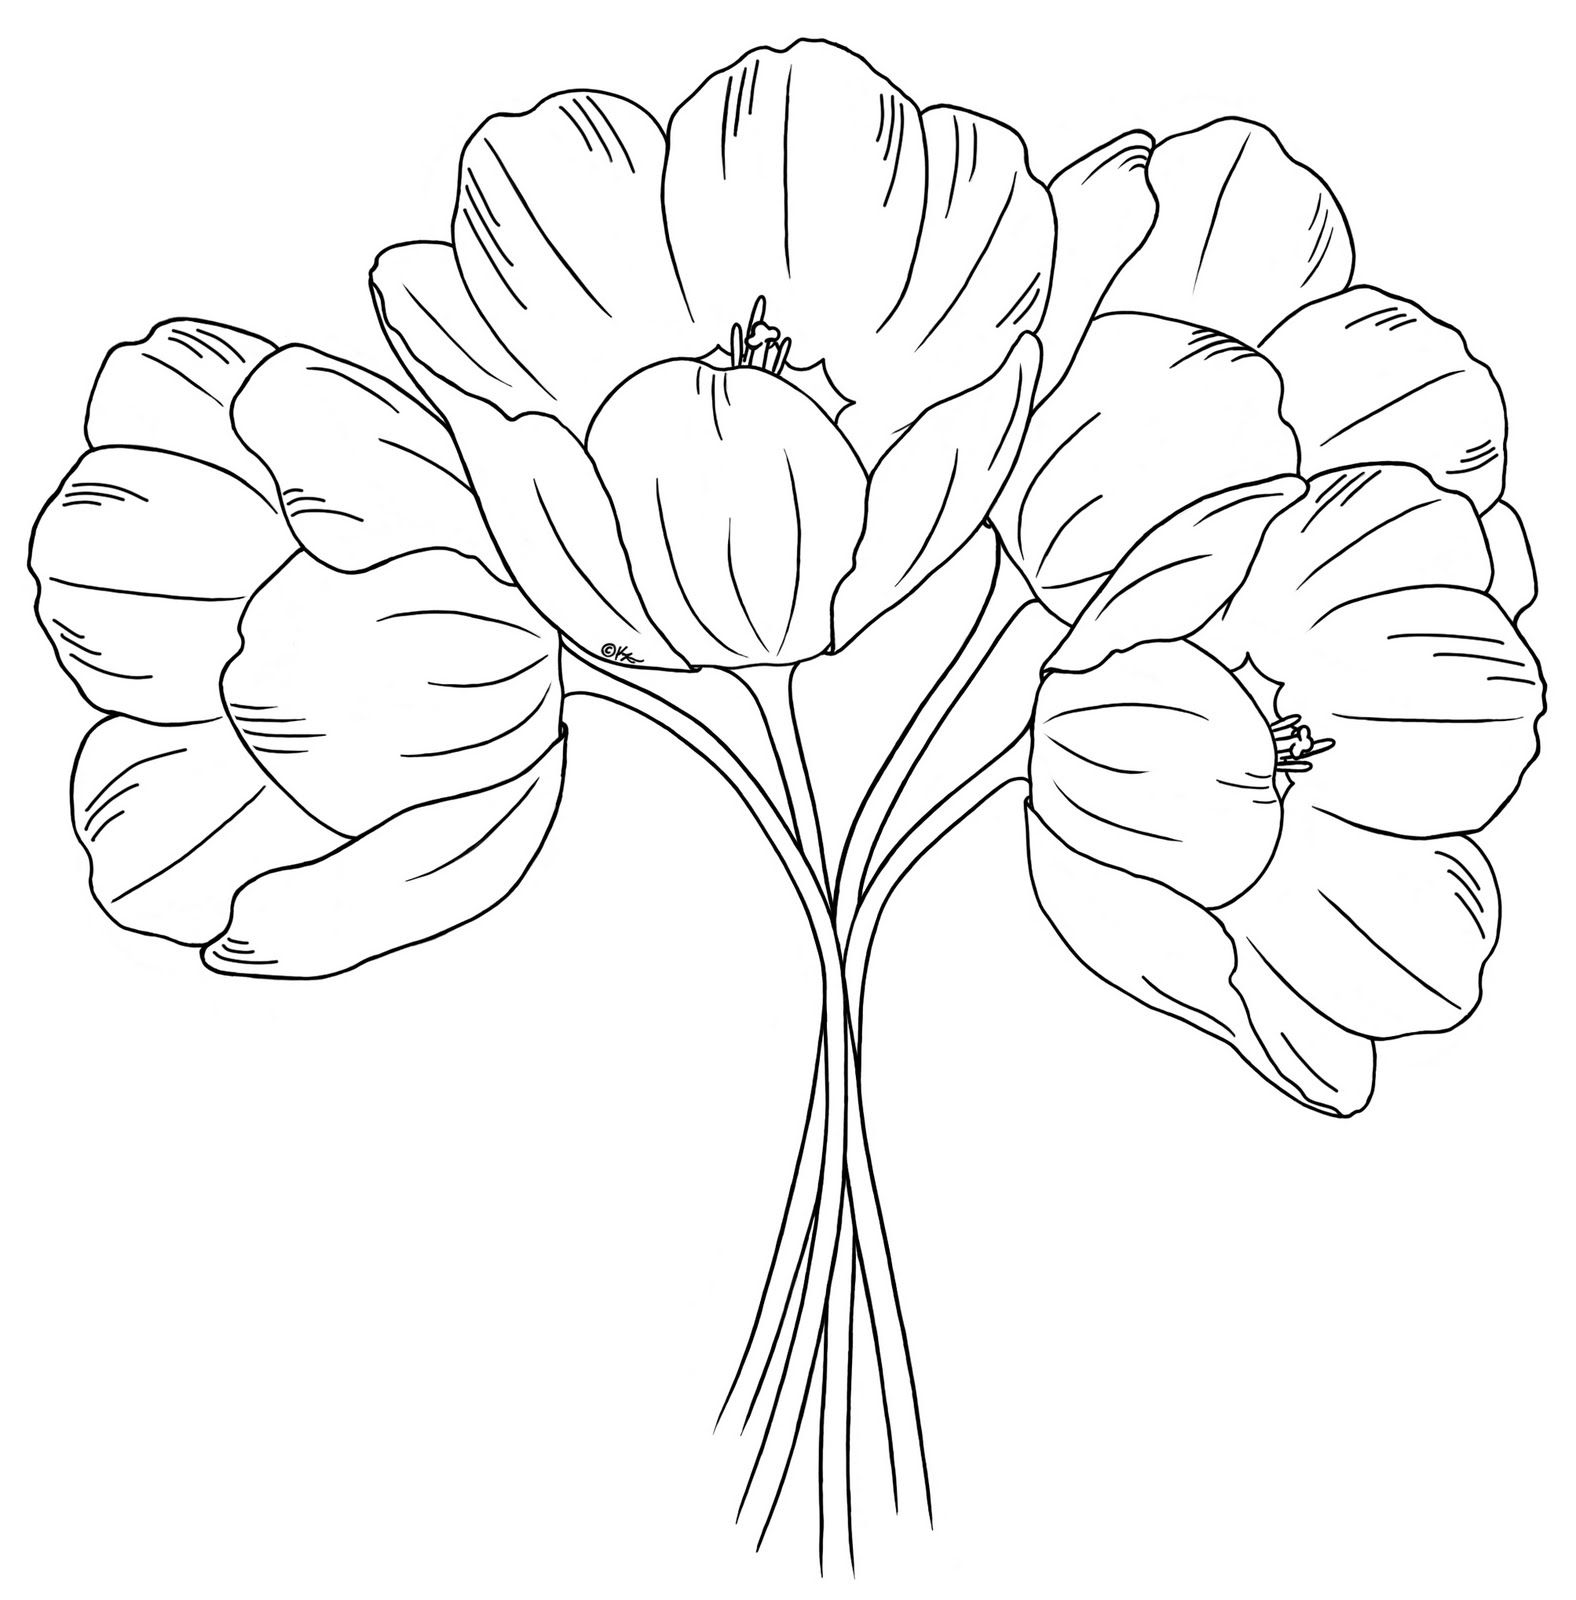 coloring outline images of flowers pin by cheryl kirkpatrick on rubber clear digi stamps flowers coloring outline images of